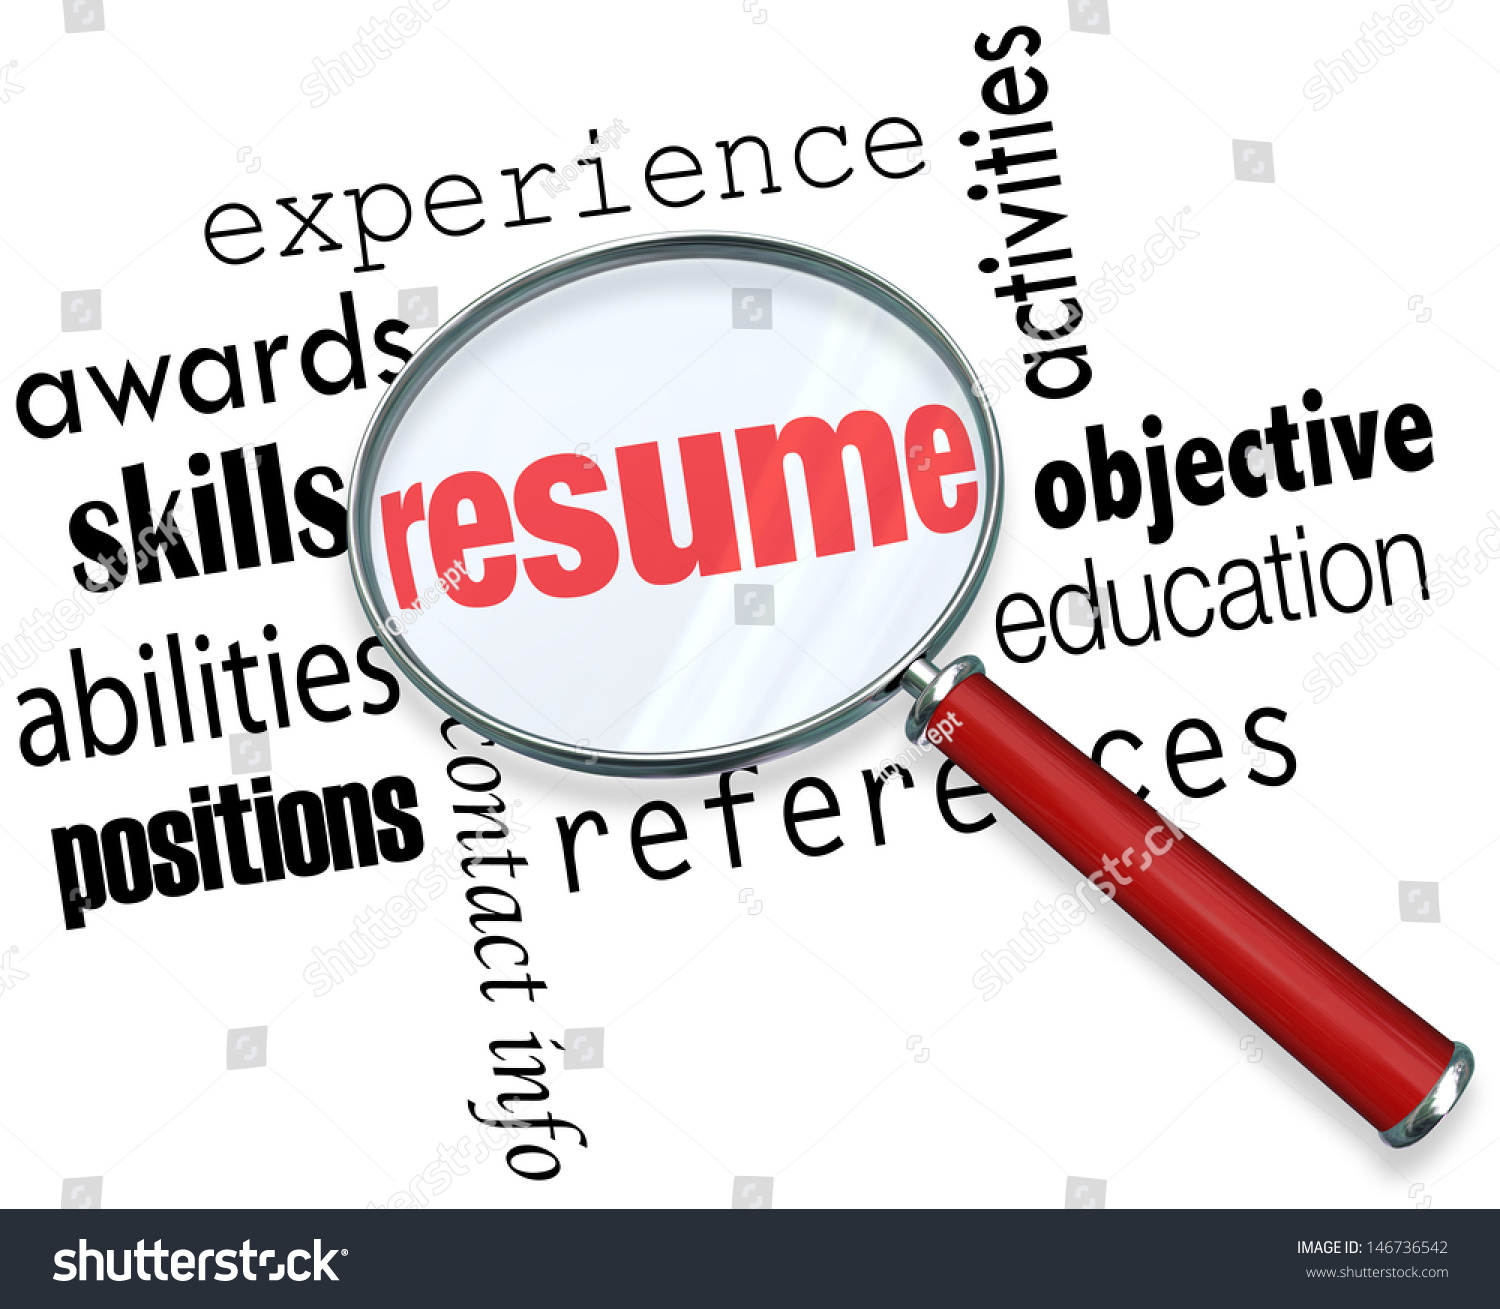 A magnifying glass over the word Resume surrounded by related terms such as  experience, awards